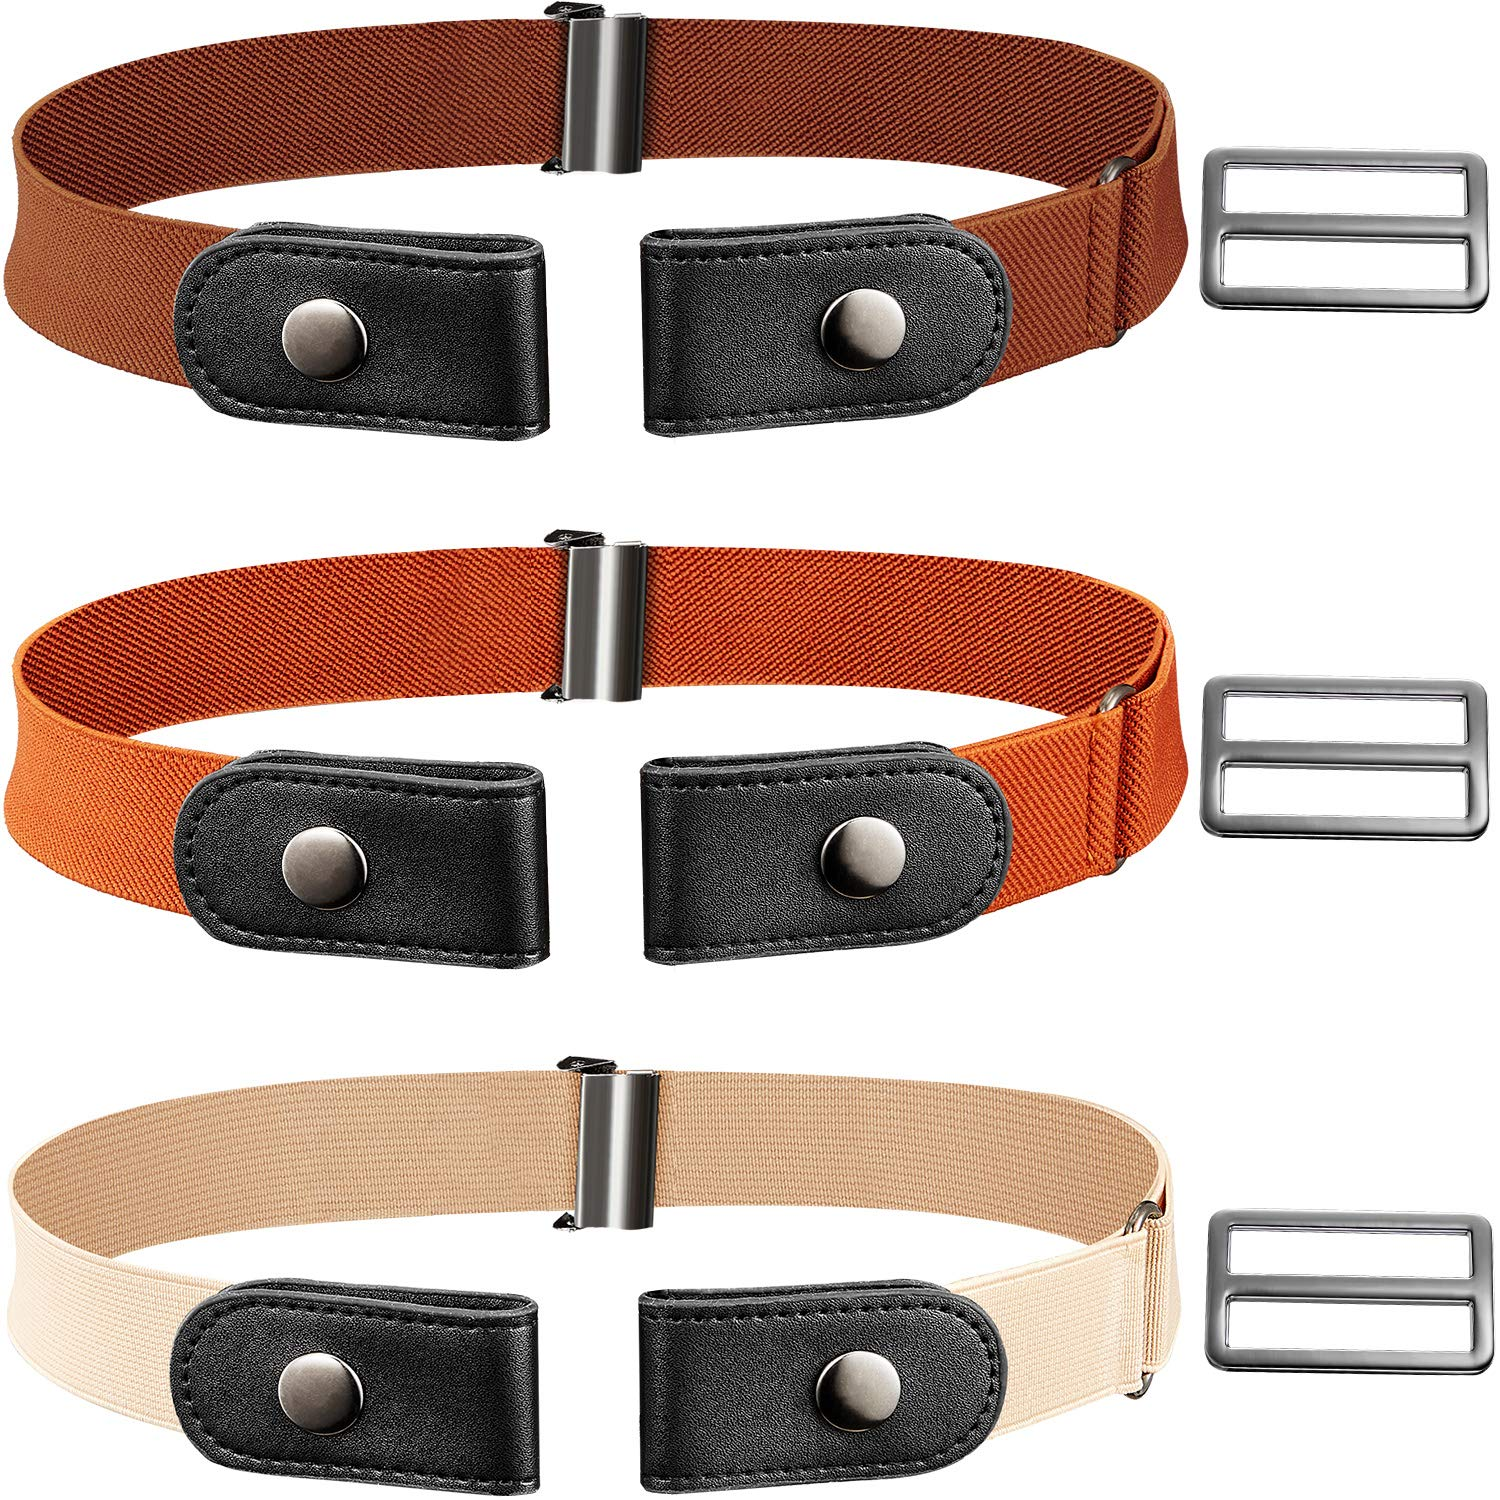 3 Piece No Buckle Stretch Belt Buckle-free Adjustable Belt with 3 Piece Buckle for Jeans